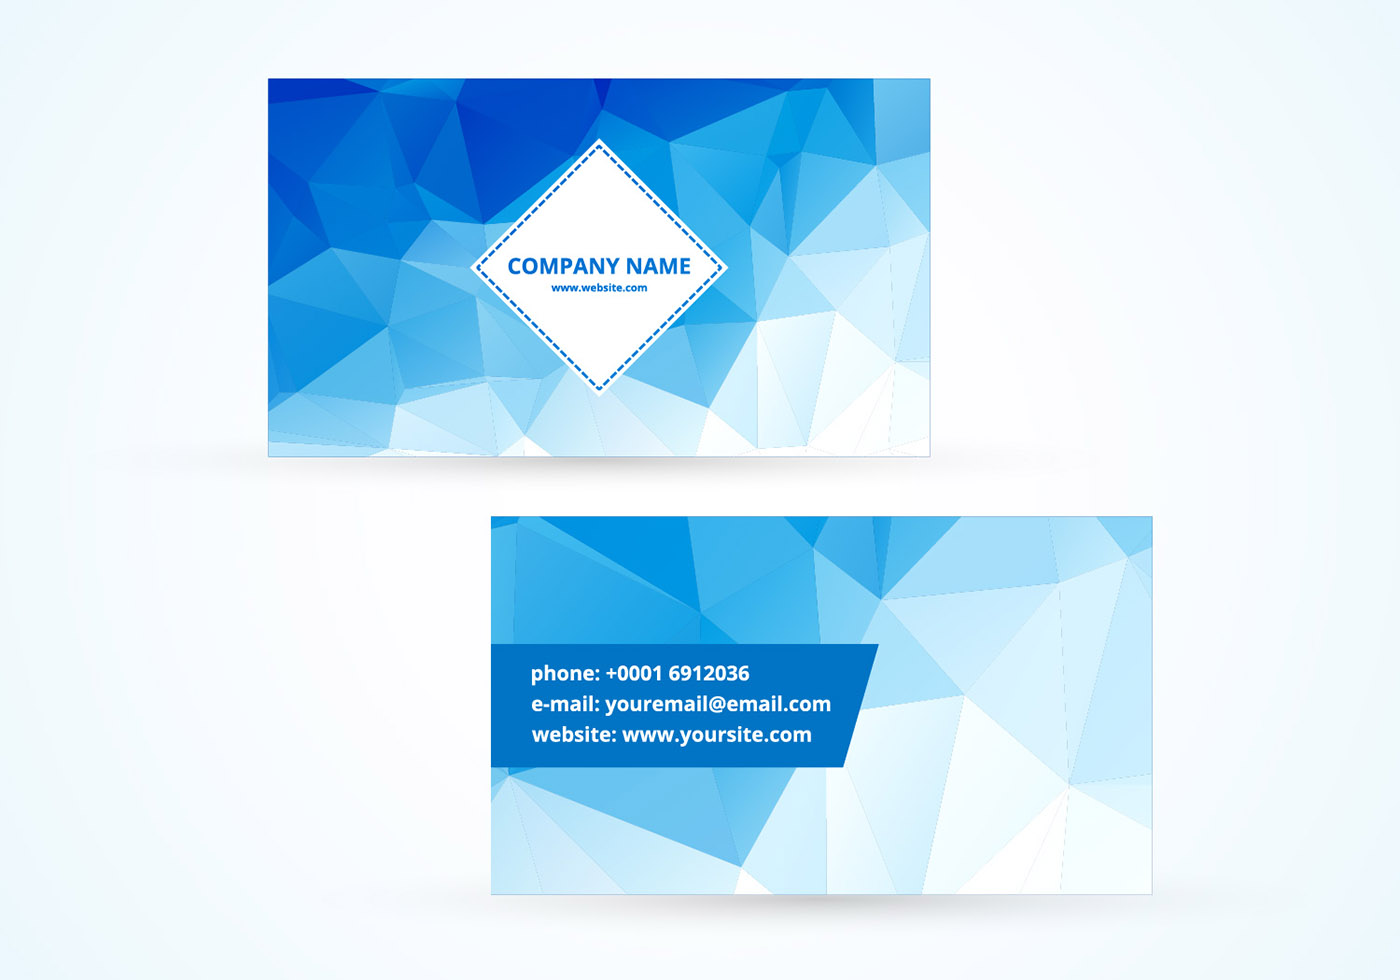 Blue polygonal vector business card download free vector art stock graphics images for Vectors business cards